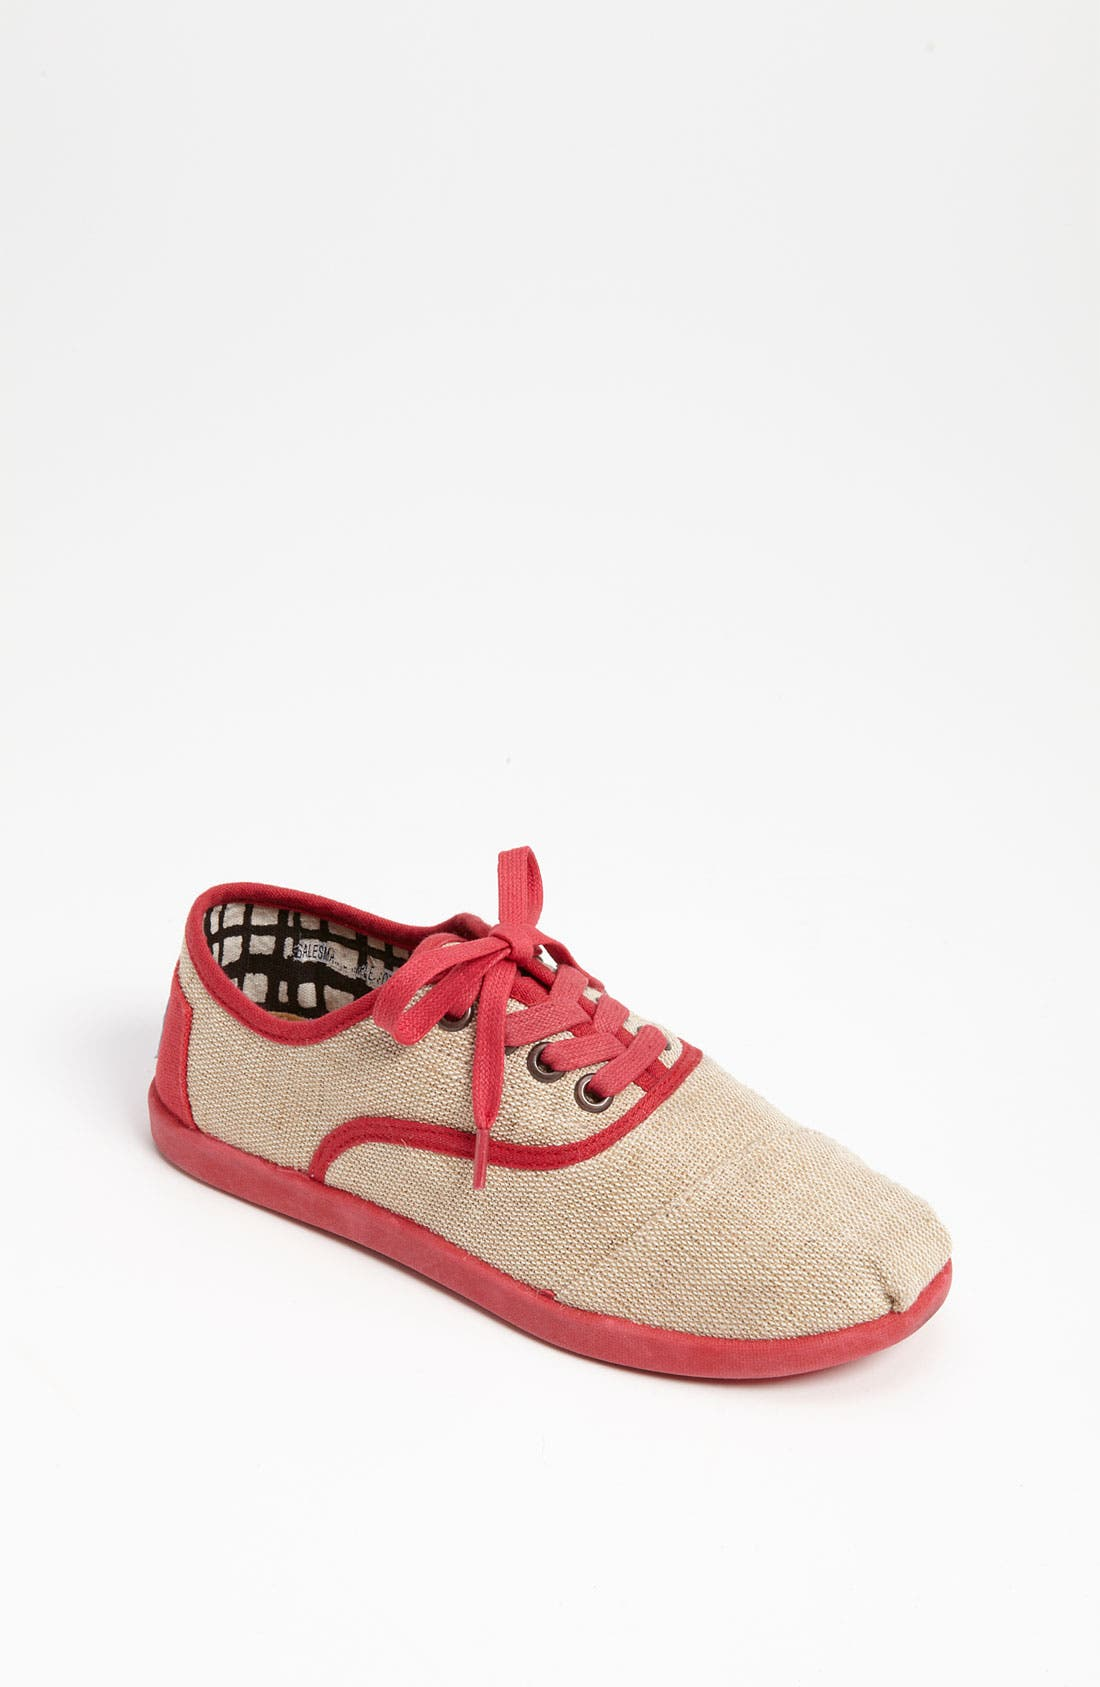 Alternate Image 1 Selected - TOMS 'Cordones Youth - Maddox' Burlap Sneaker (Toddler, Little Kid & Big Kid)